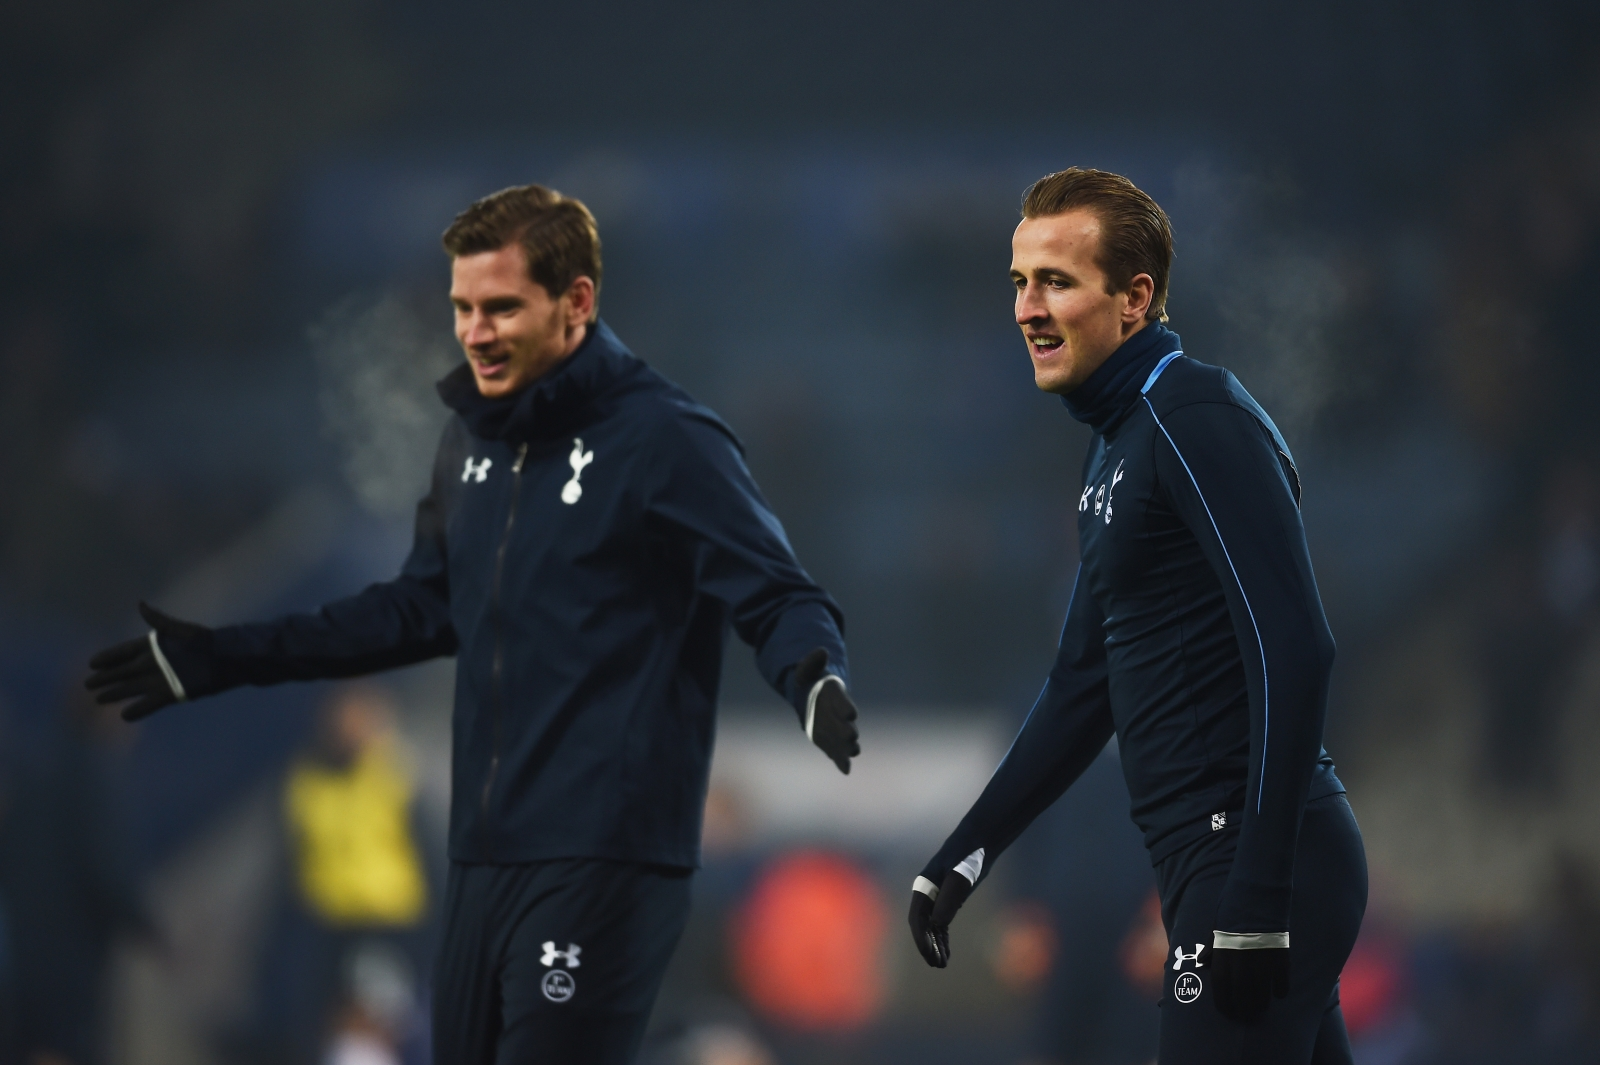 Jan Vertonghen and Harry Kane